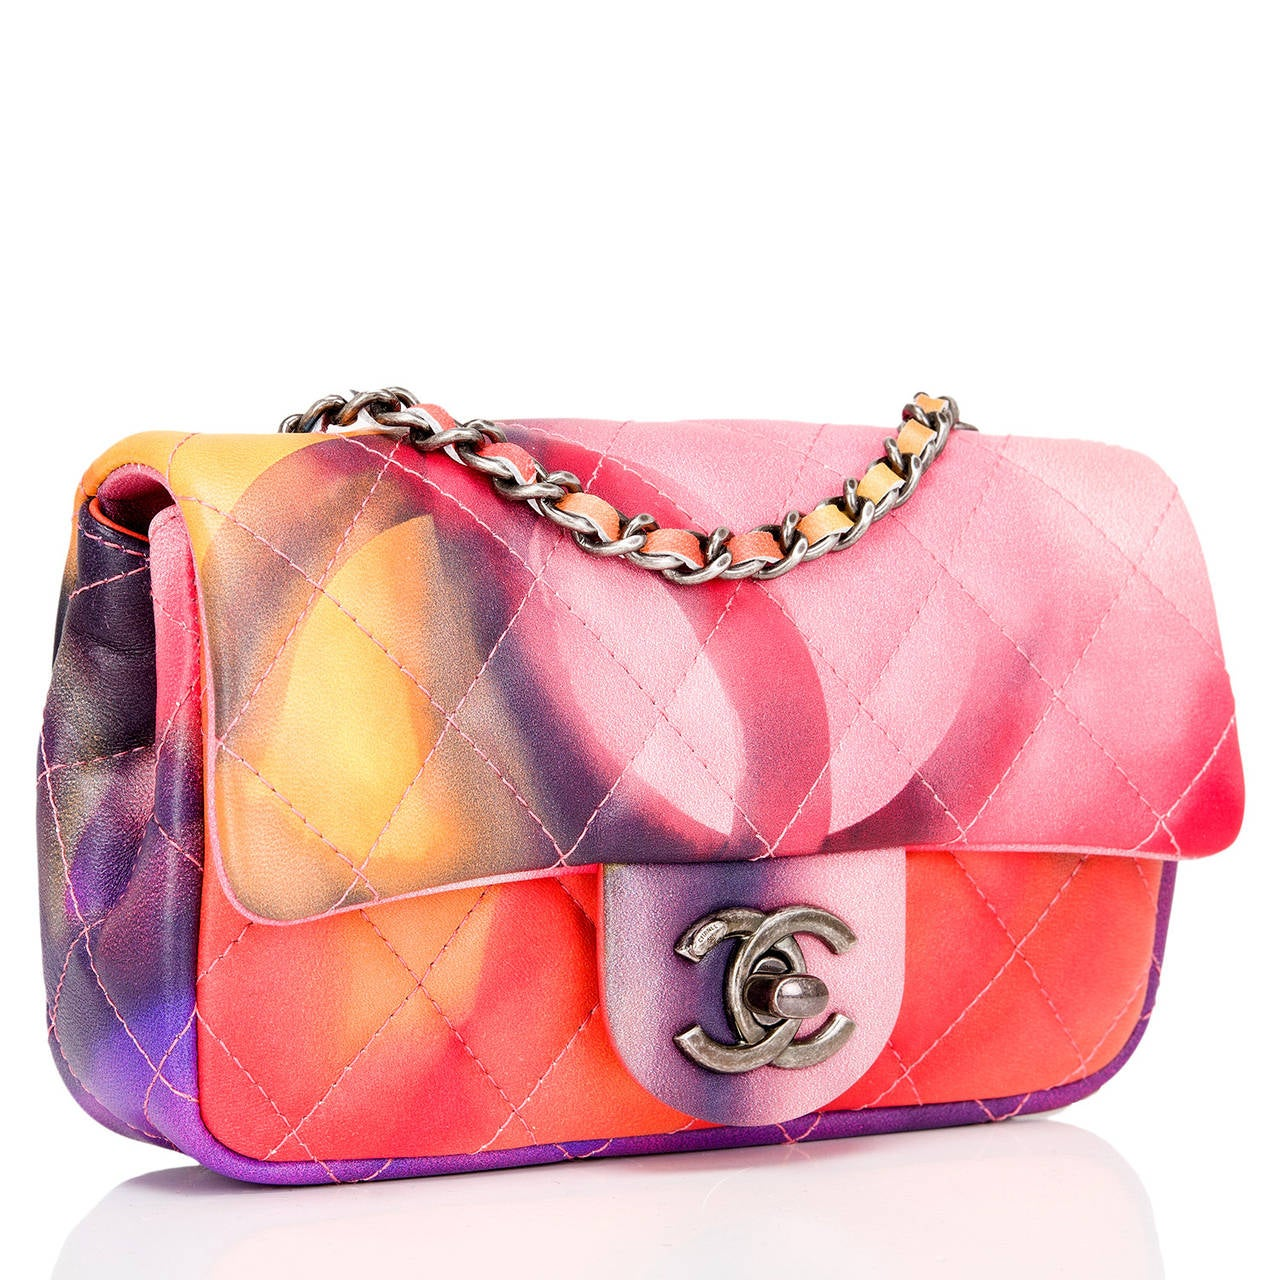 The Flower Power Mini flap bag harkens back to the anti-war protests of the 1960's with its colorful tie-dyed lambskin. This bright and beautiful bag has a front flap with an aged ruthenium CC turnlock closure and interwoven aged ruthenium chain